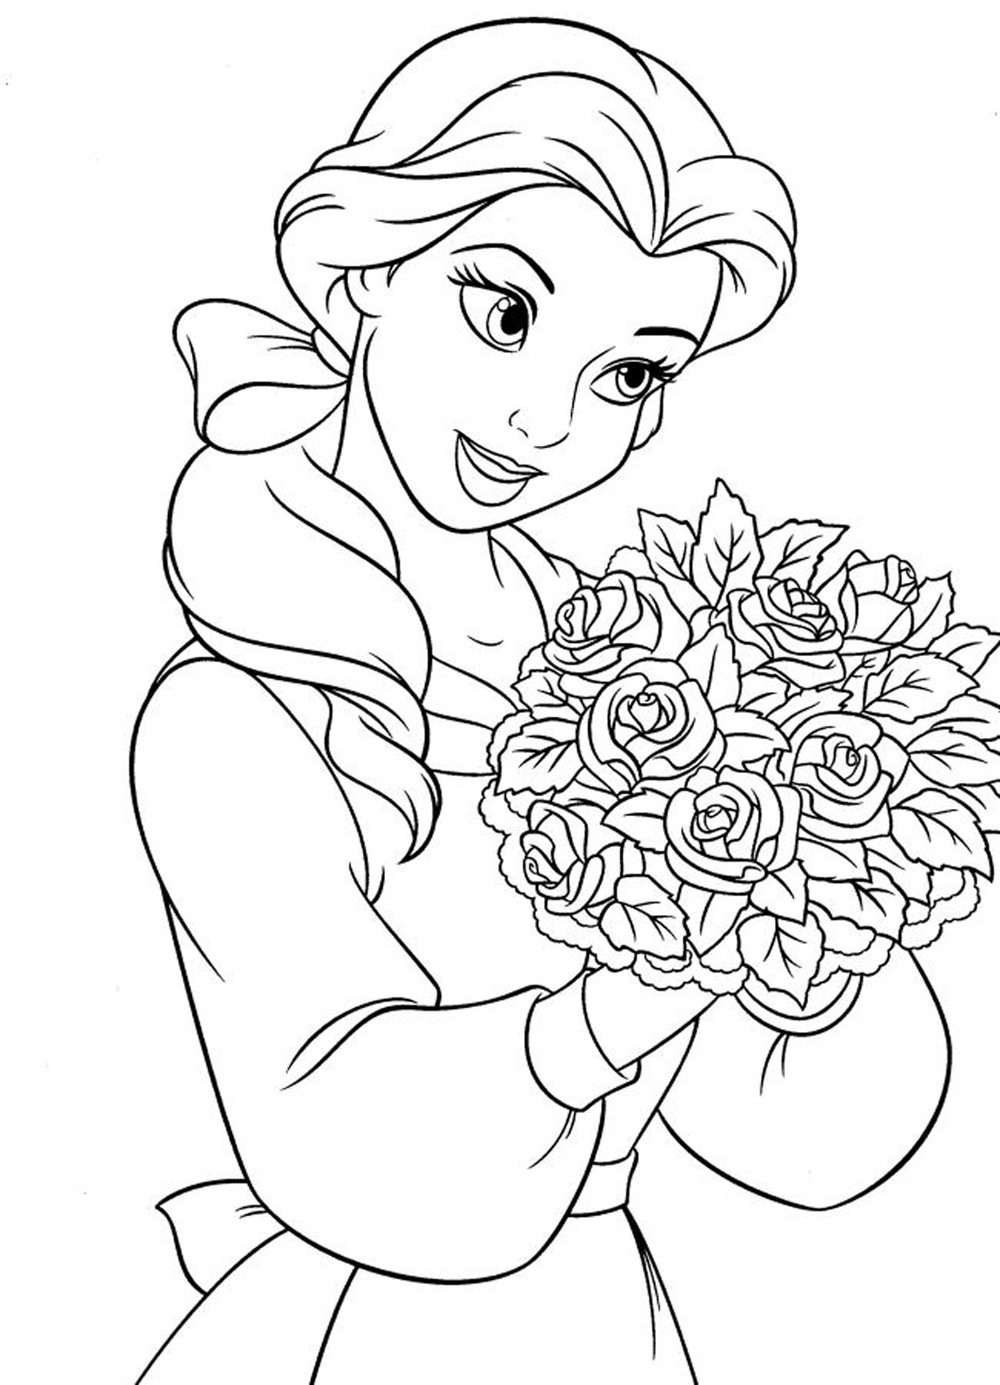 childrens coloring pages of disney - photo#15